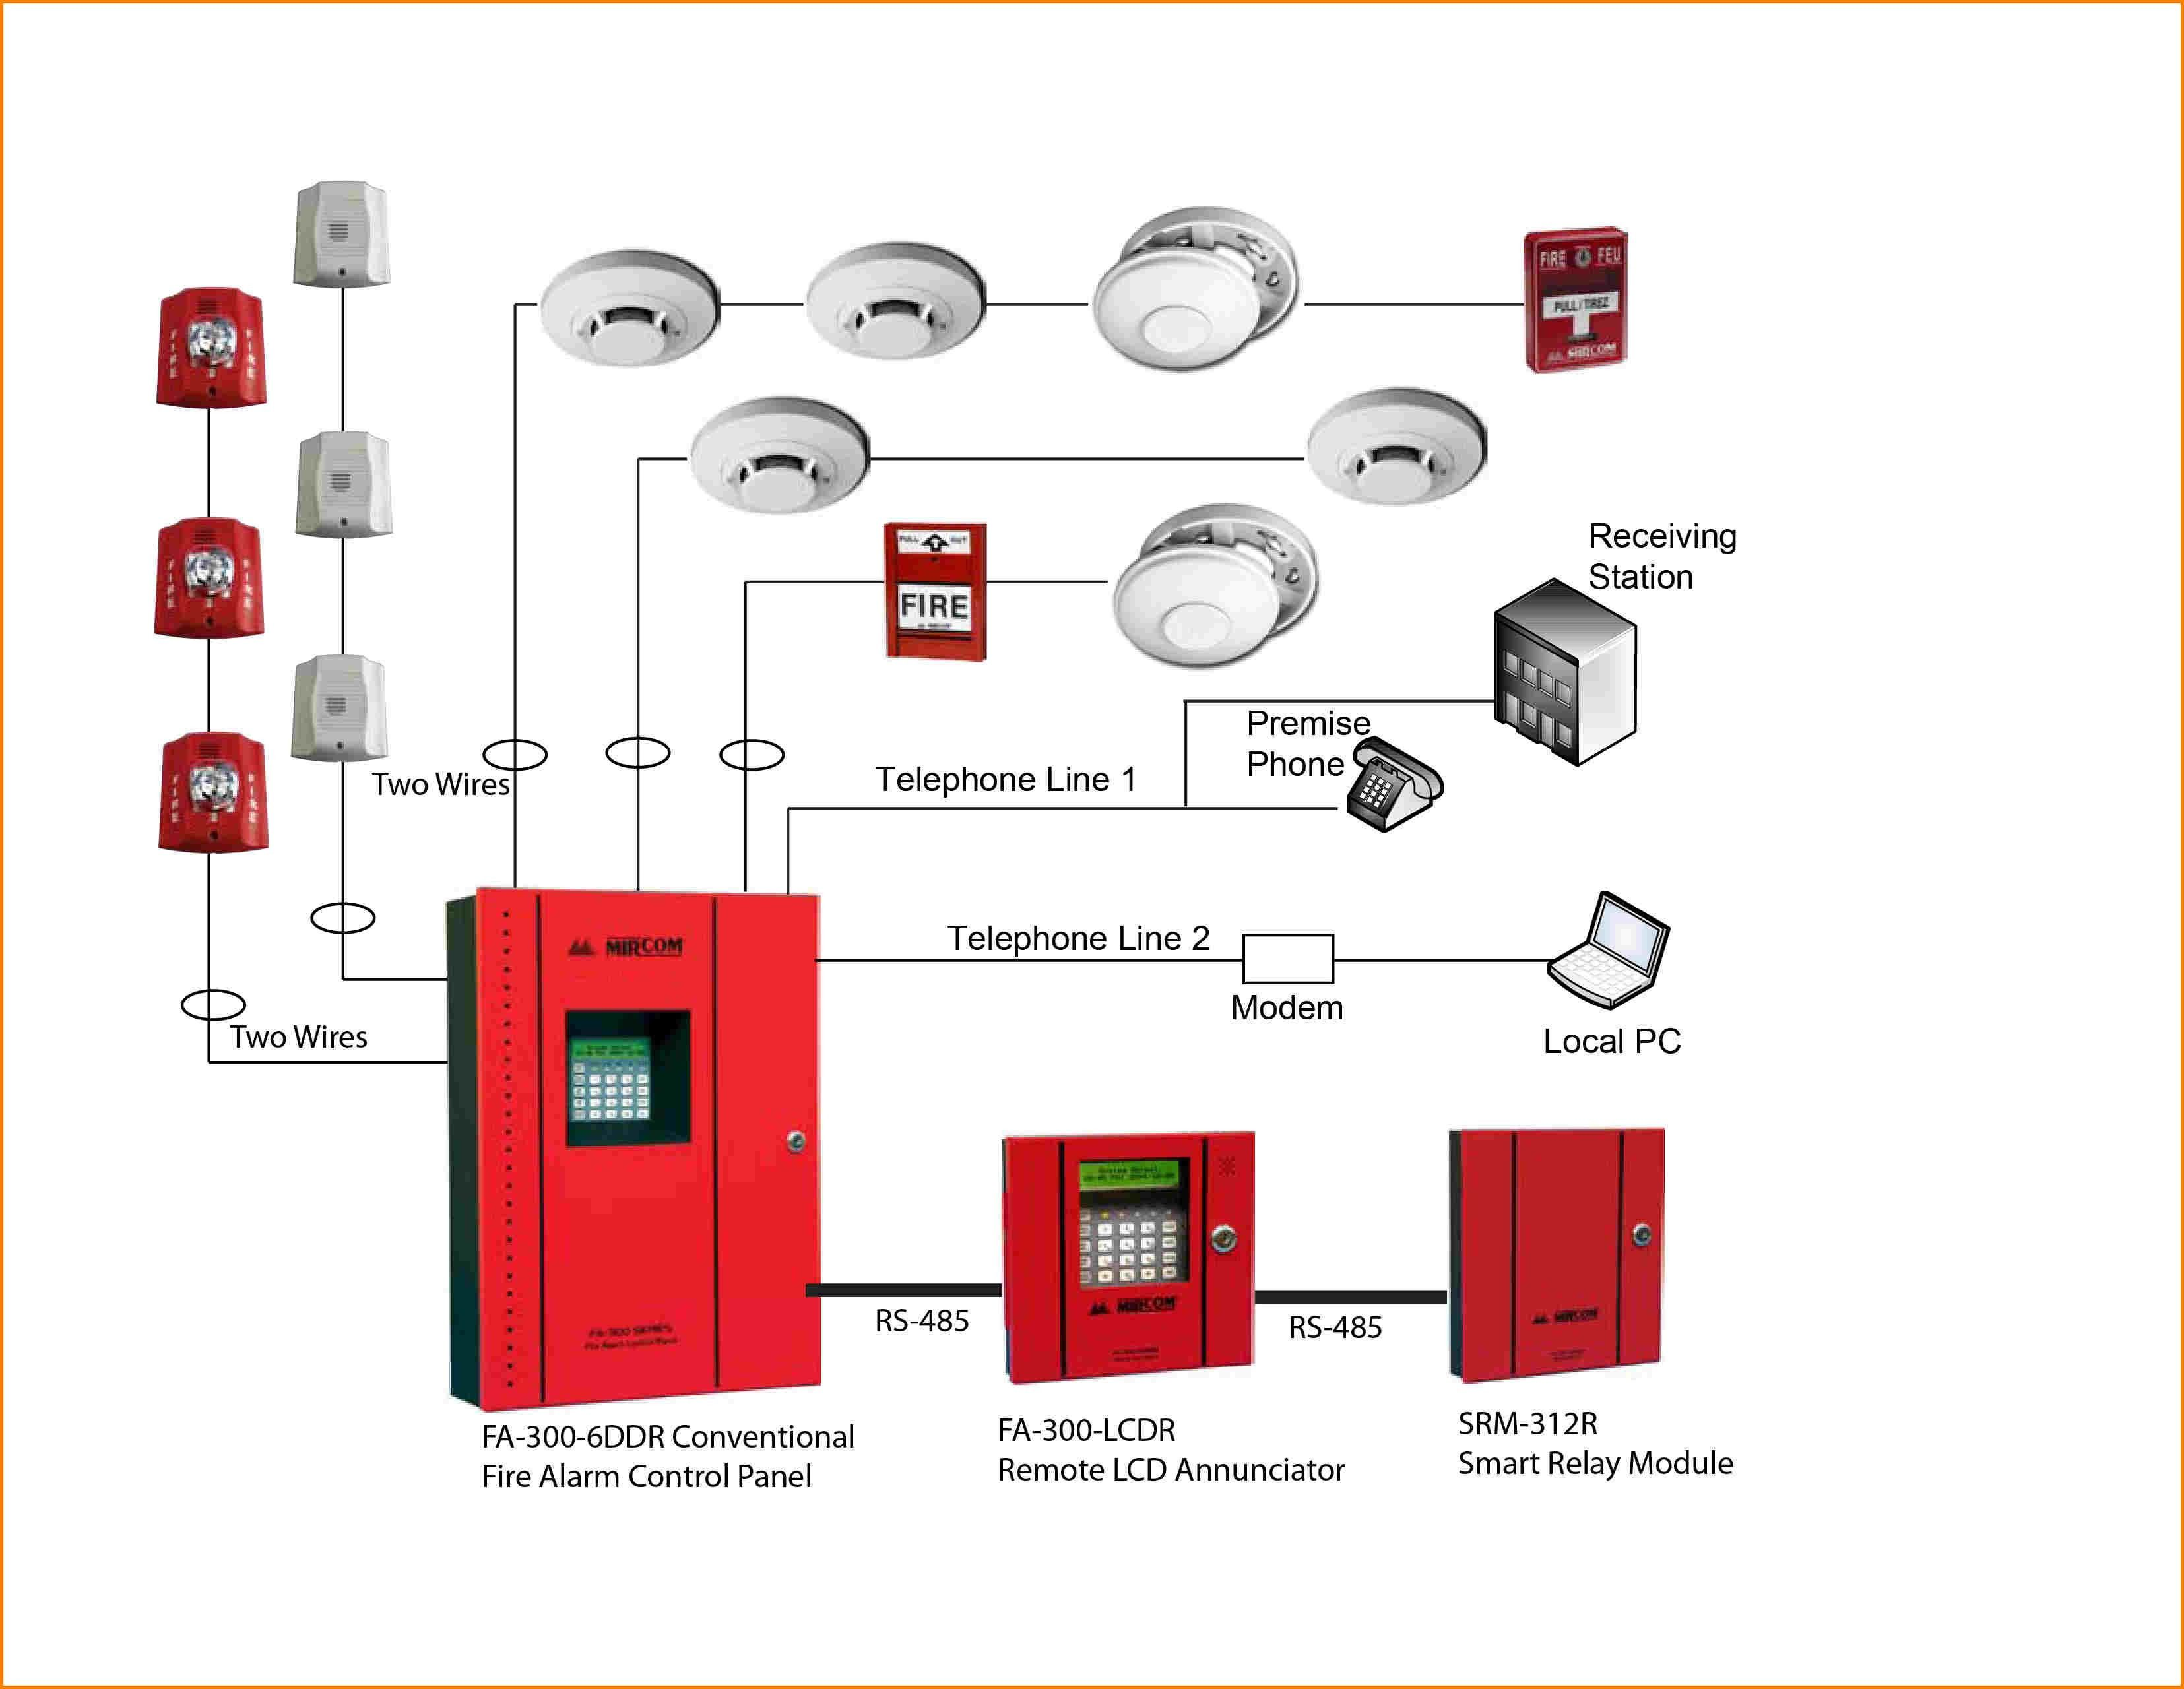 Wiring Diagram For A Simple Fire Alarm System Best Of Amazing Incredible   Fire Alarm System